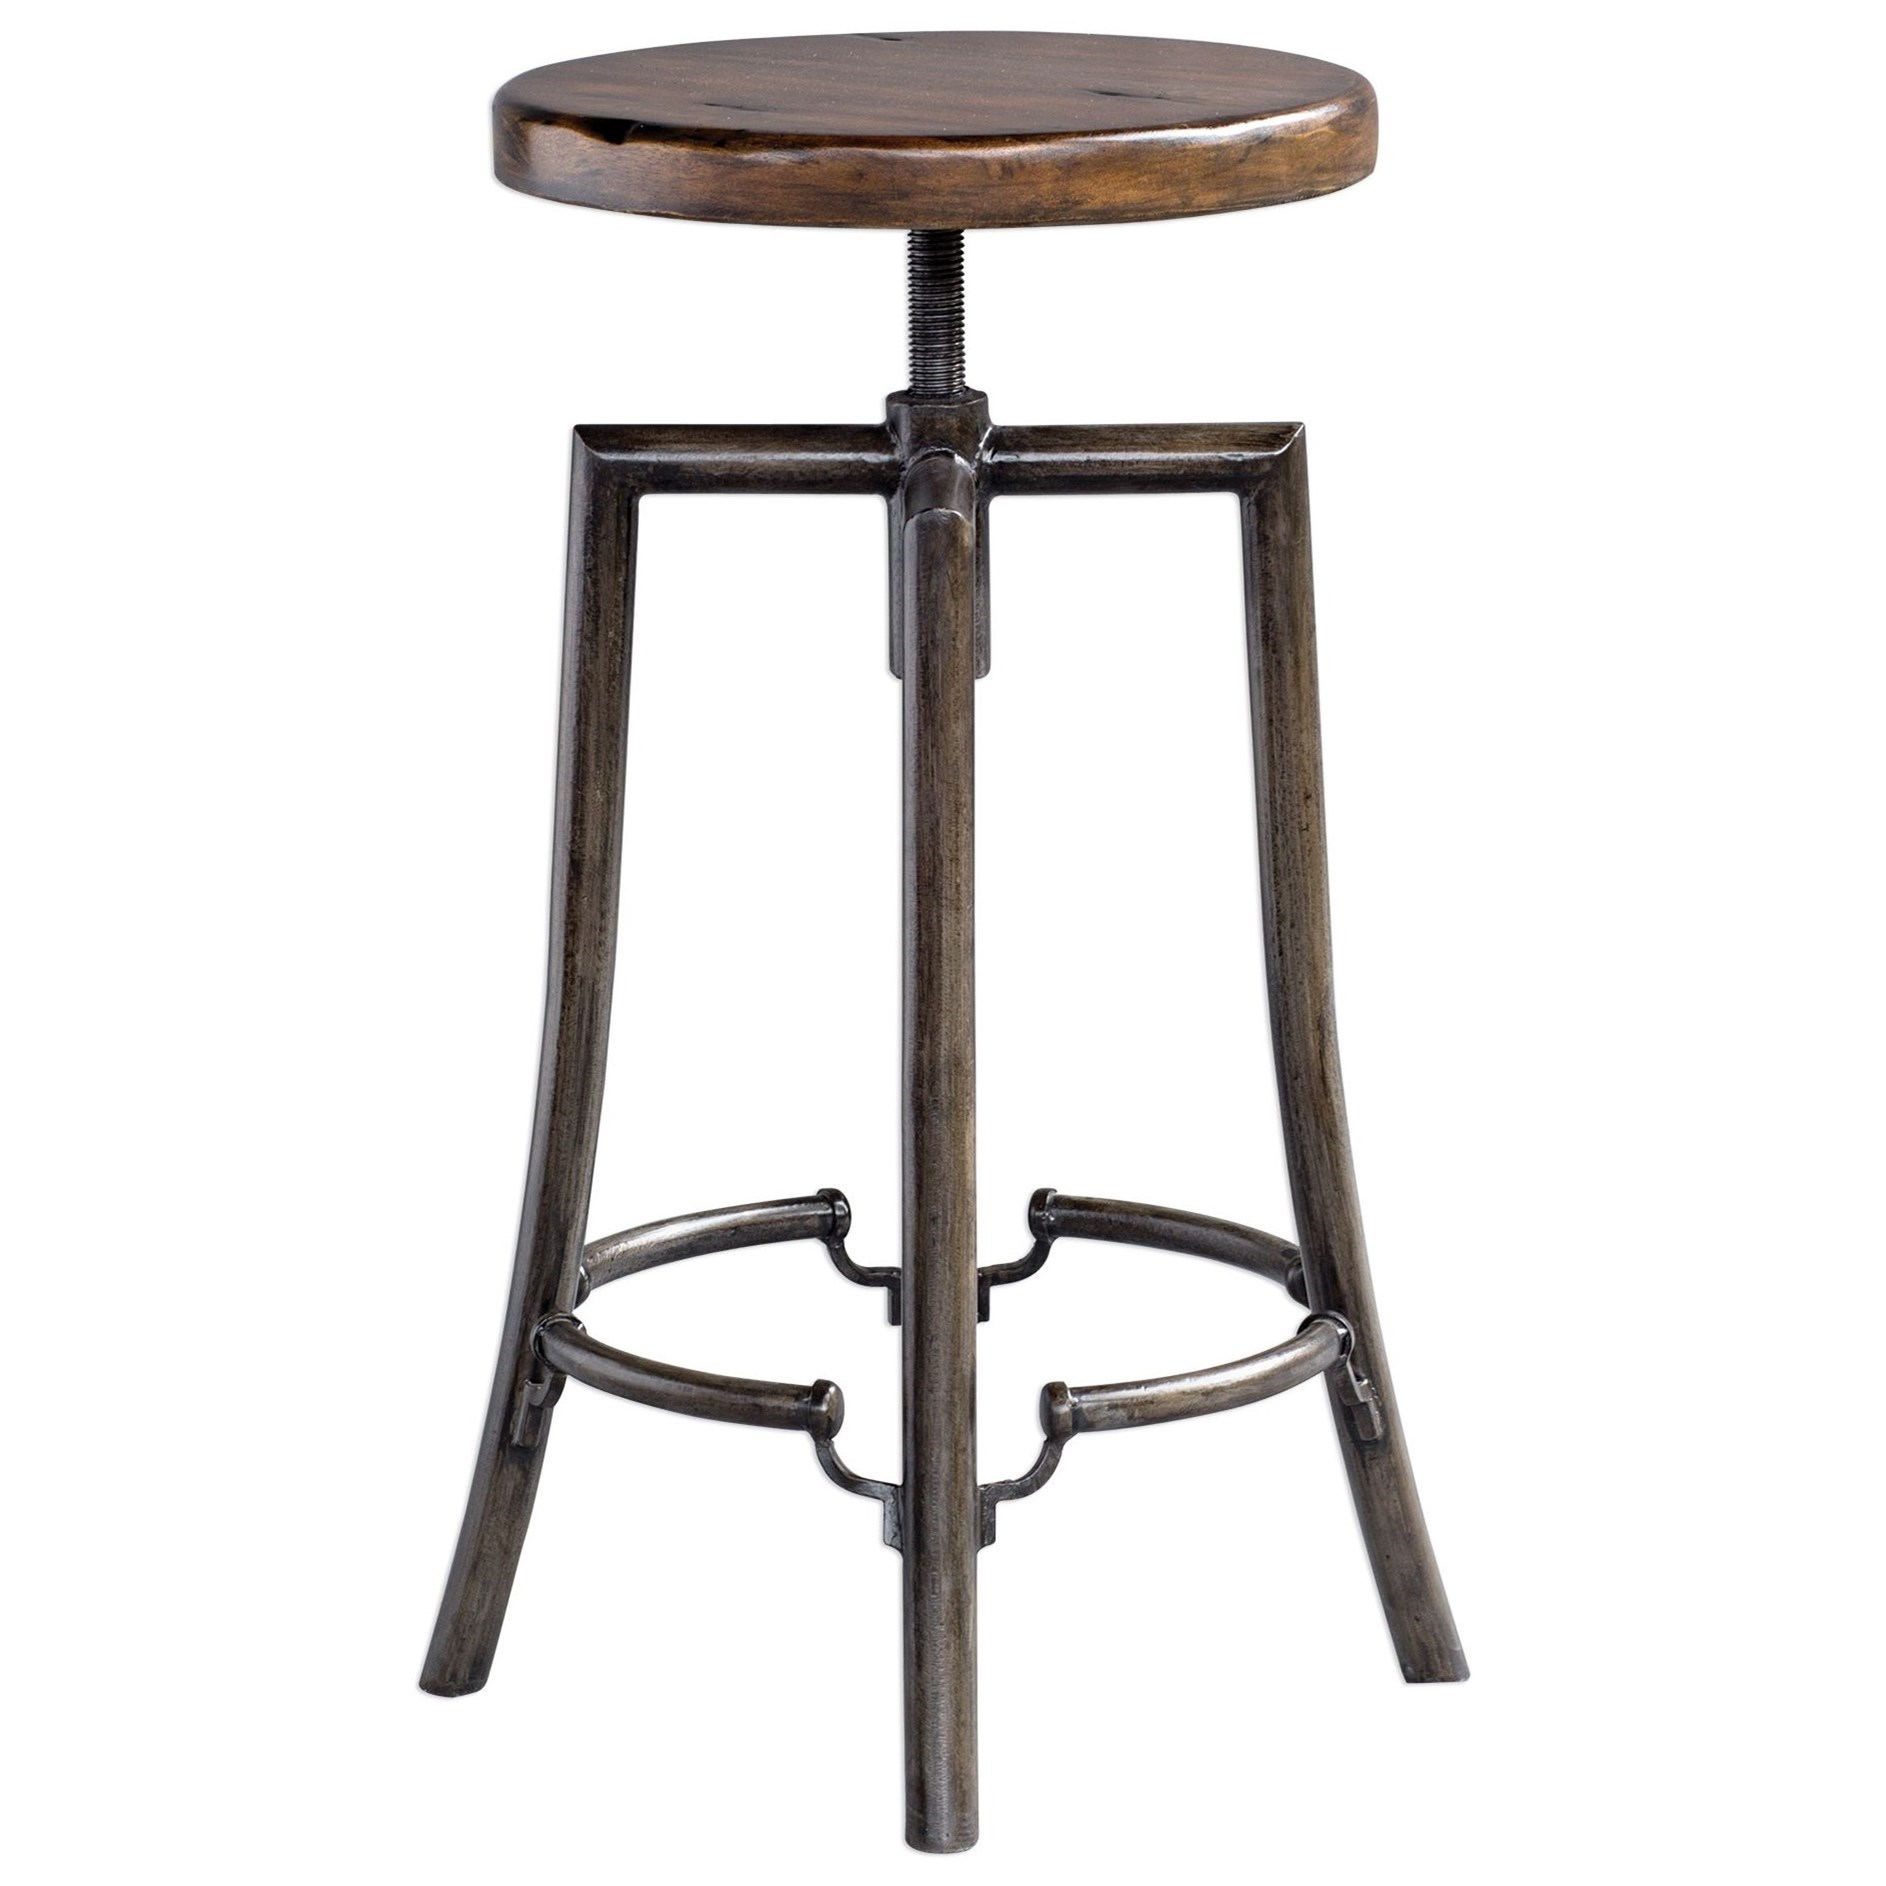 Accent Furniture - Stools Westlyn Industrial Bar Stool by Uttermost at Del Sol Furniture